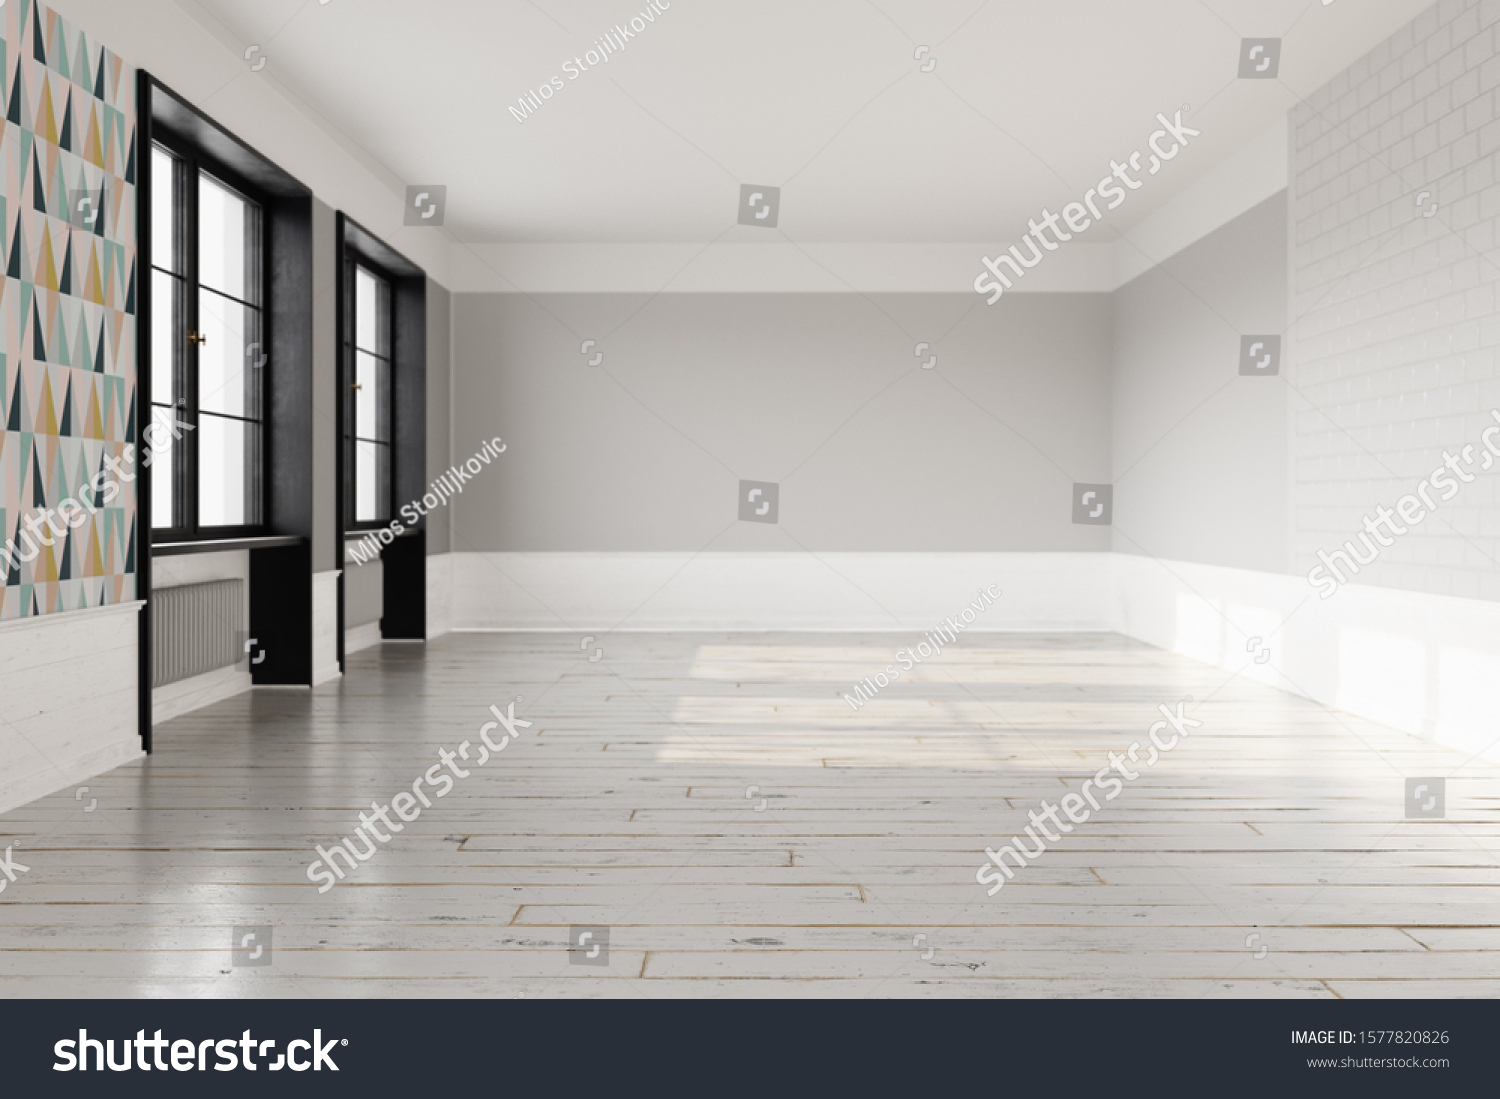 Empty Scandinavian Interior Light Wooden Floor Stock Illustration 1577820826